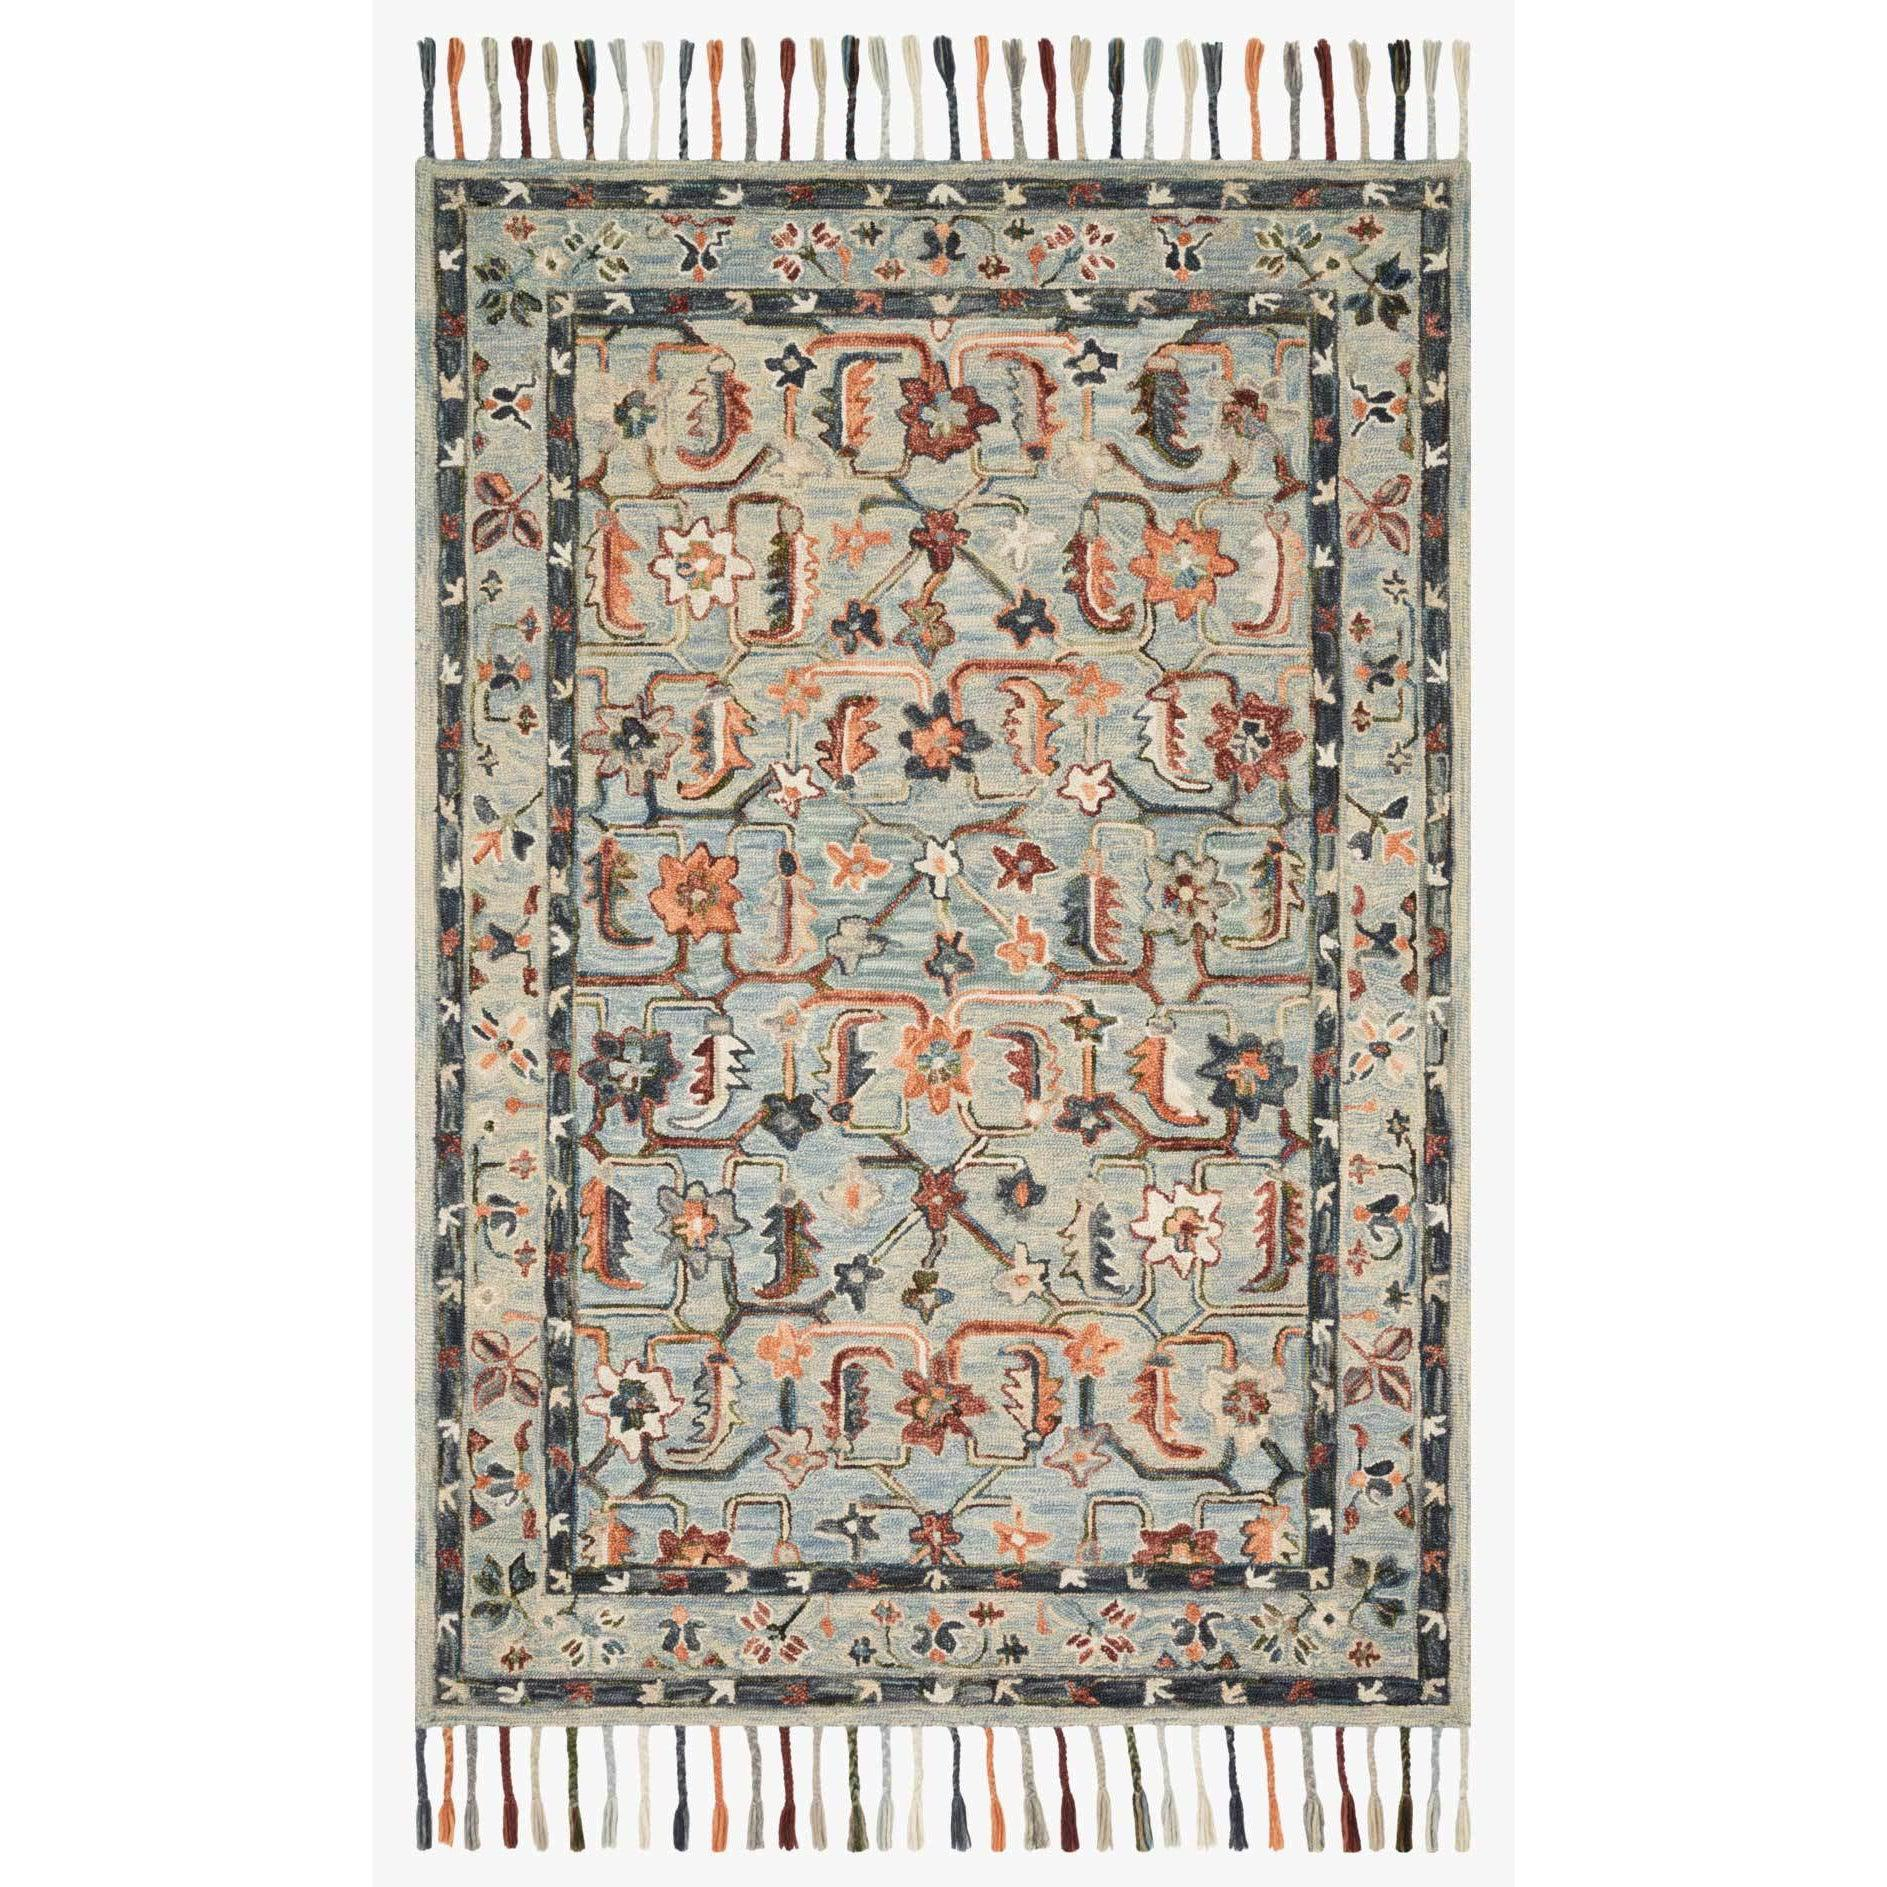 Elka Rugs by Loloi - ELK-01 - Sky / Multi-Loloi Rugs-Blue Hand Home